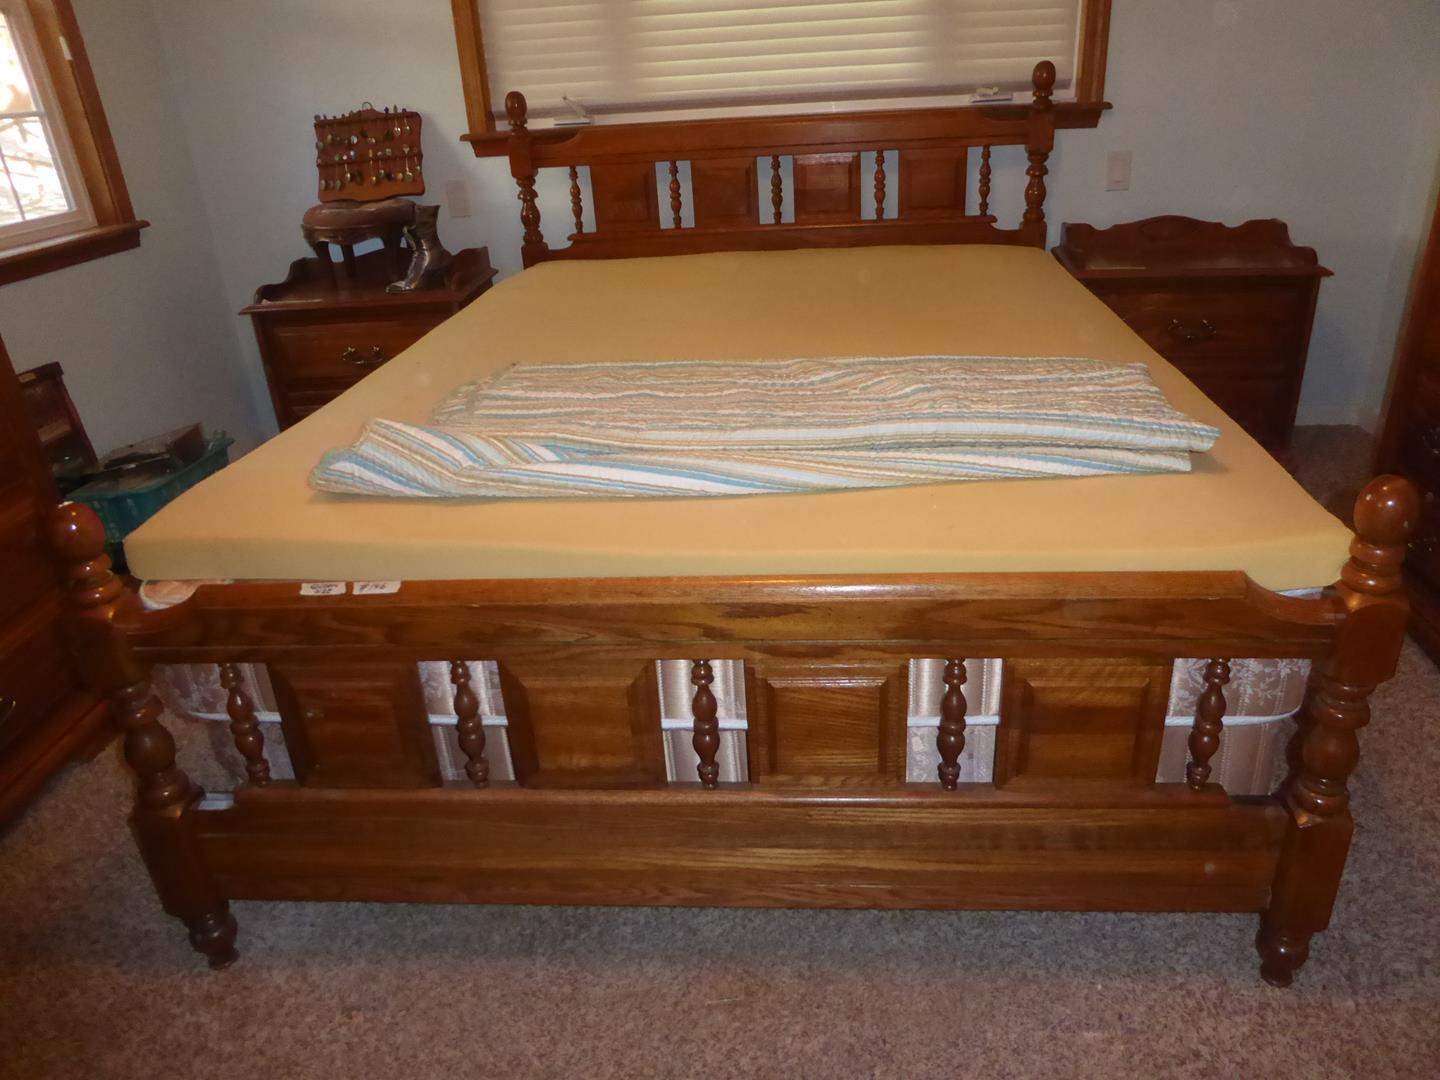 Lot # 146 - Quality Queen Size Bed Frame w/Beautyrest Mattress Set, Memory Foam Topper & Seashells Bedspread (main image)